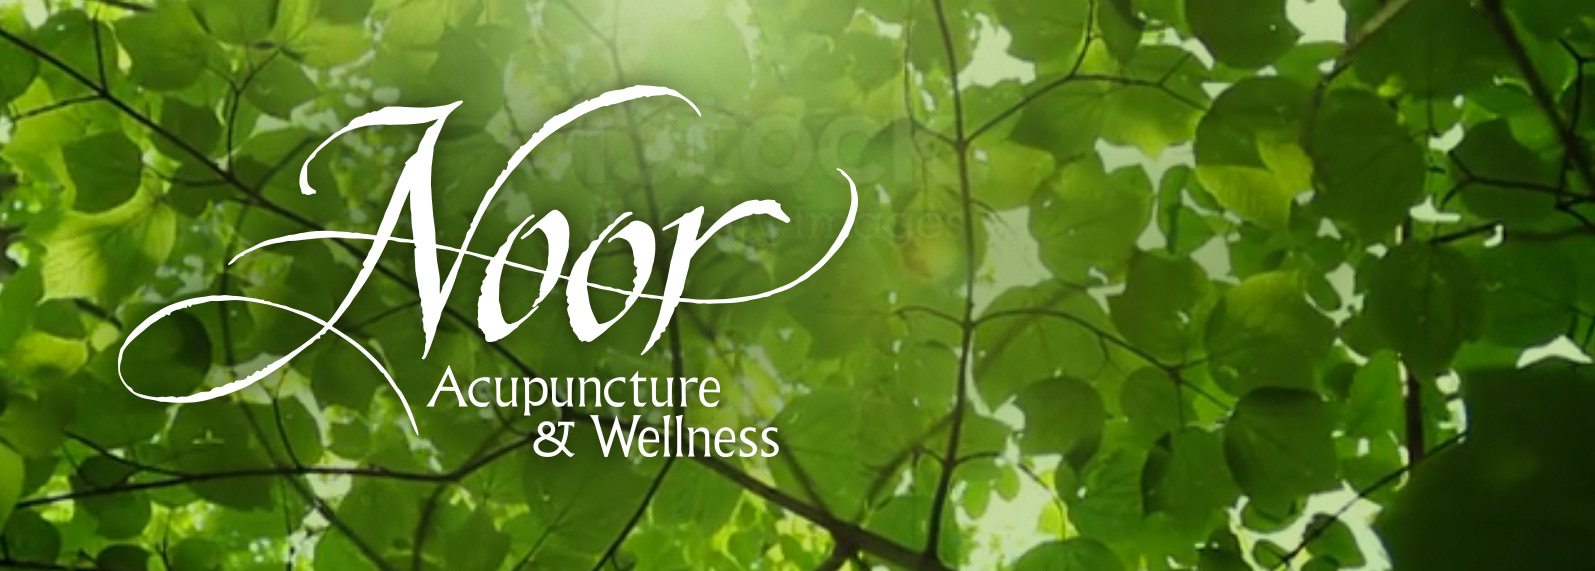 Noor Acupuncture and Wellness